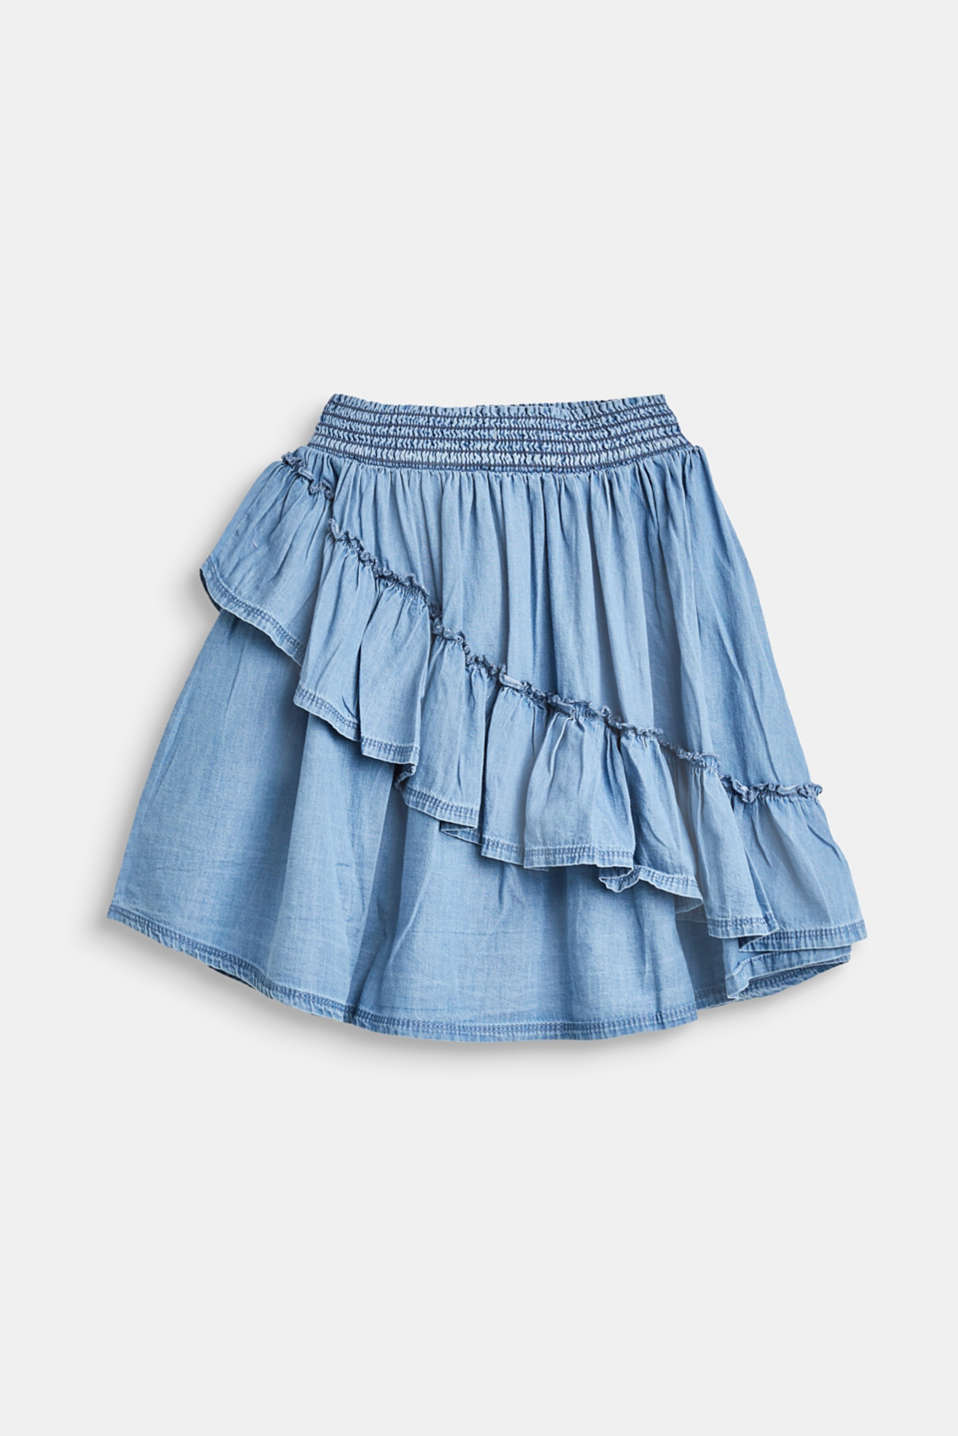 Esprit - Denim skirt with flounces, 100% cotton